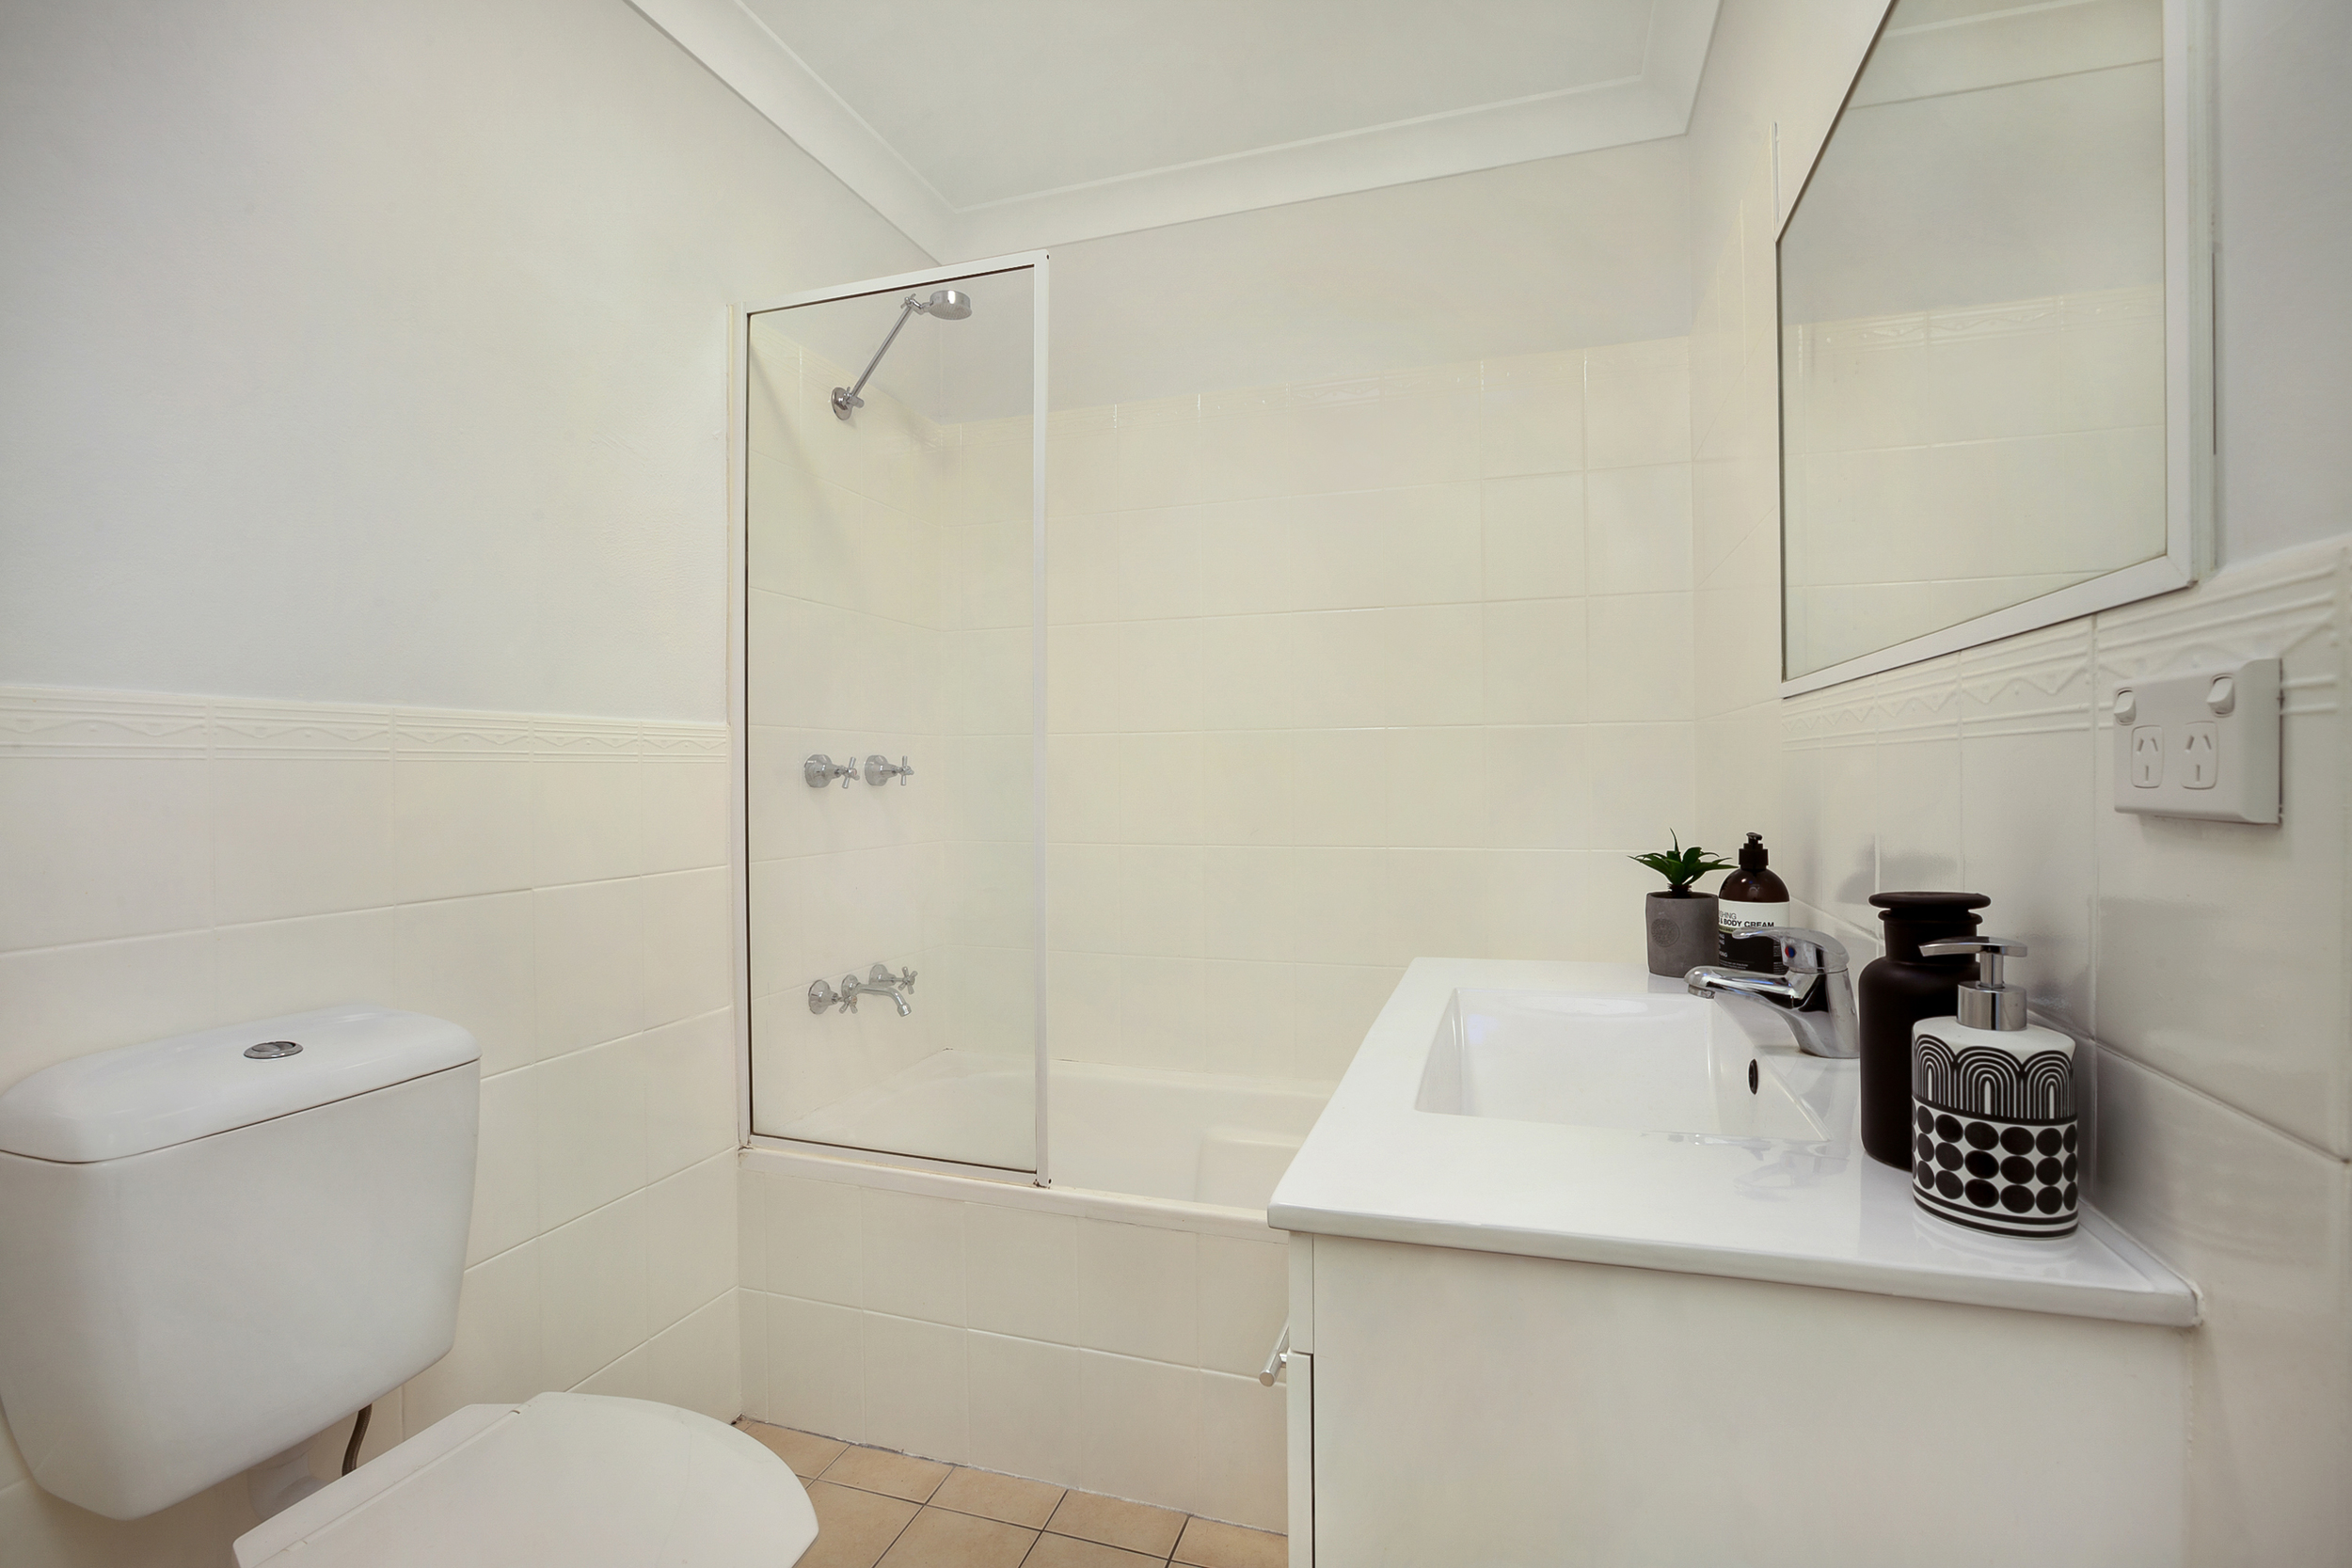 Middleton-St-2-24-Petersham-Bathroom.jpg